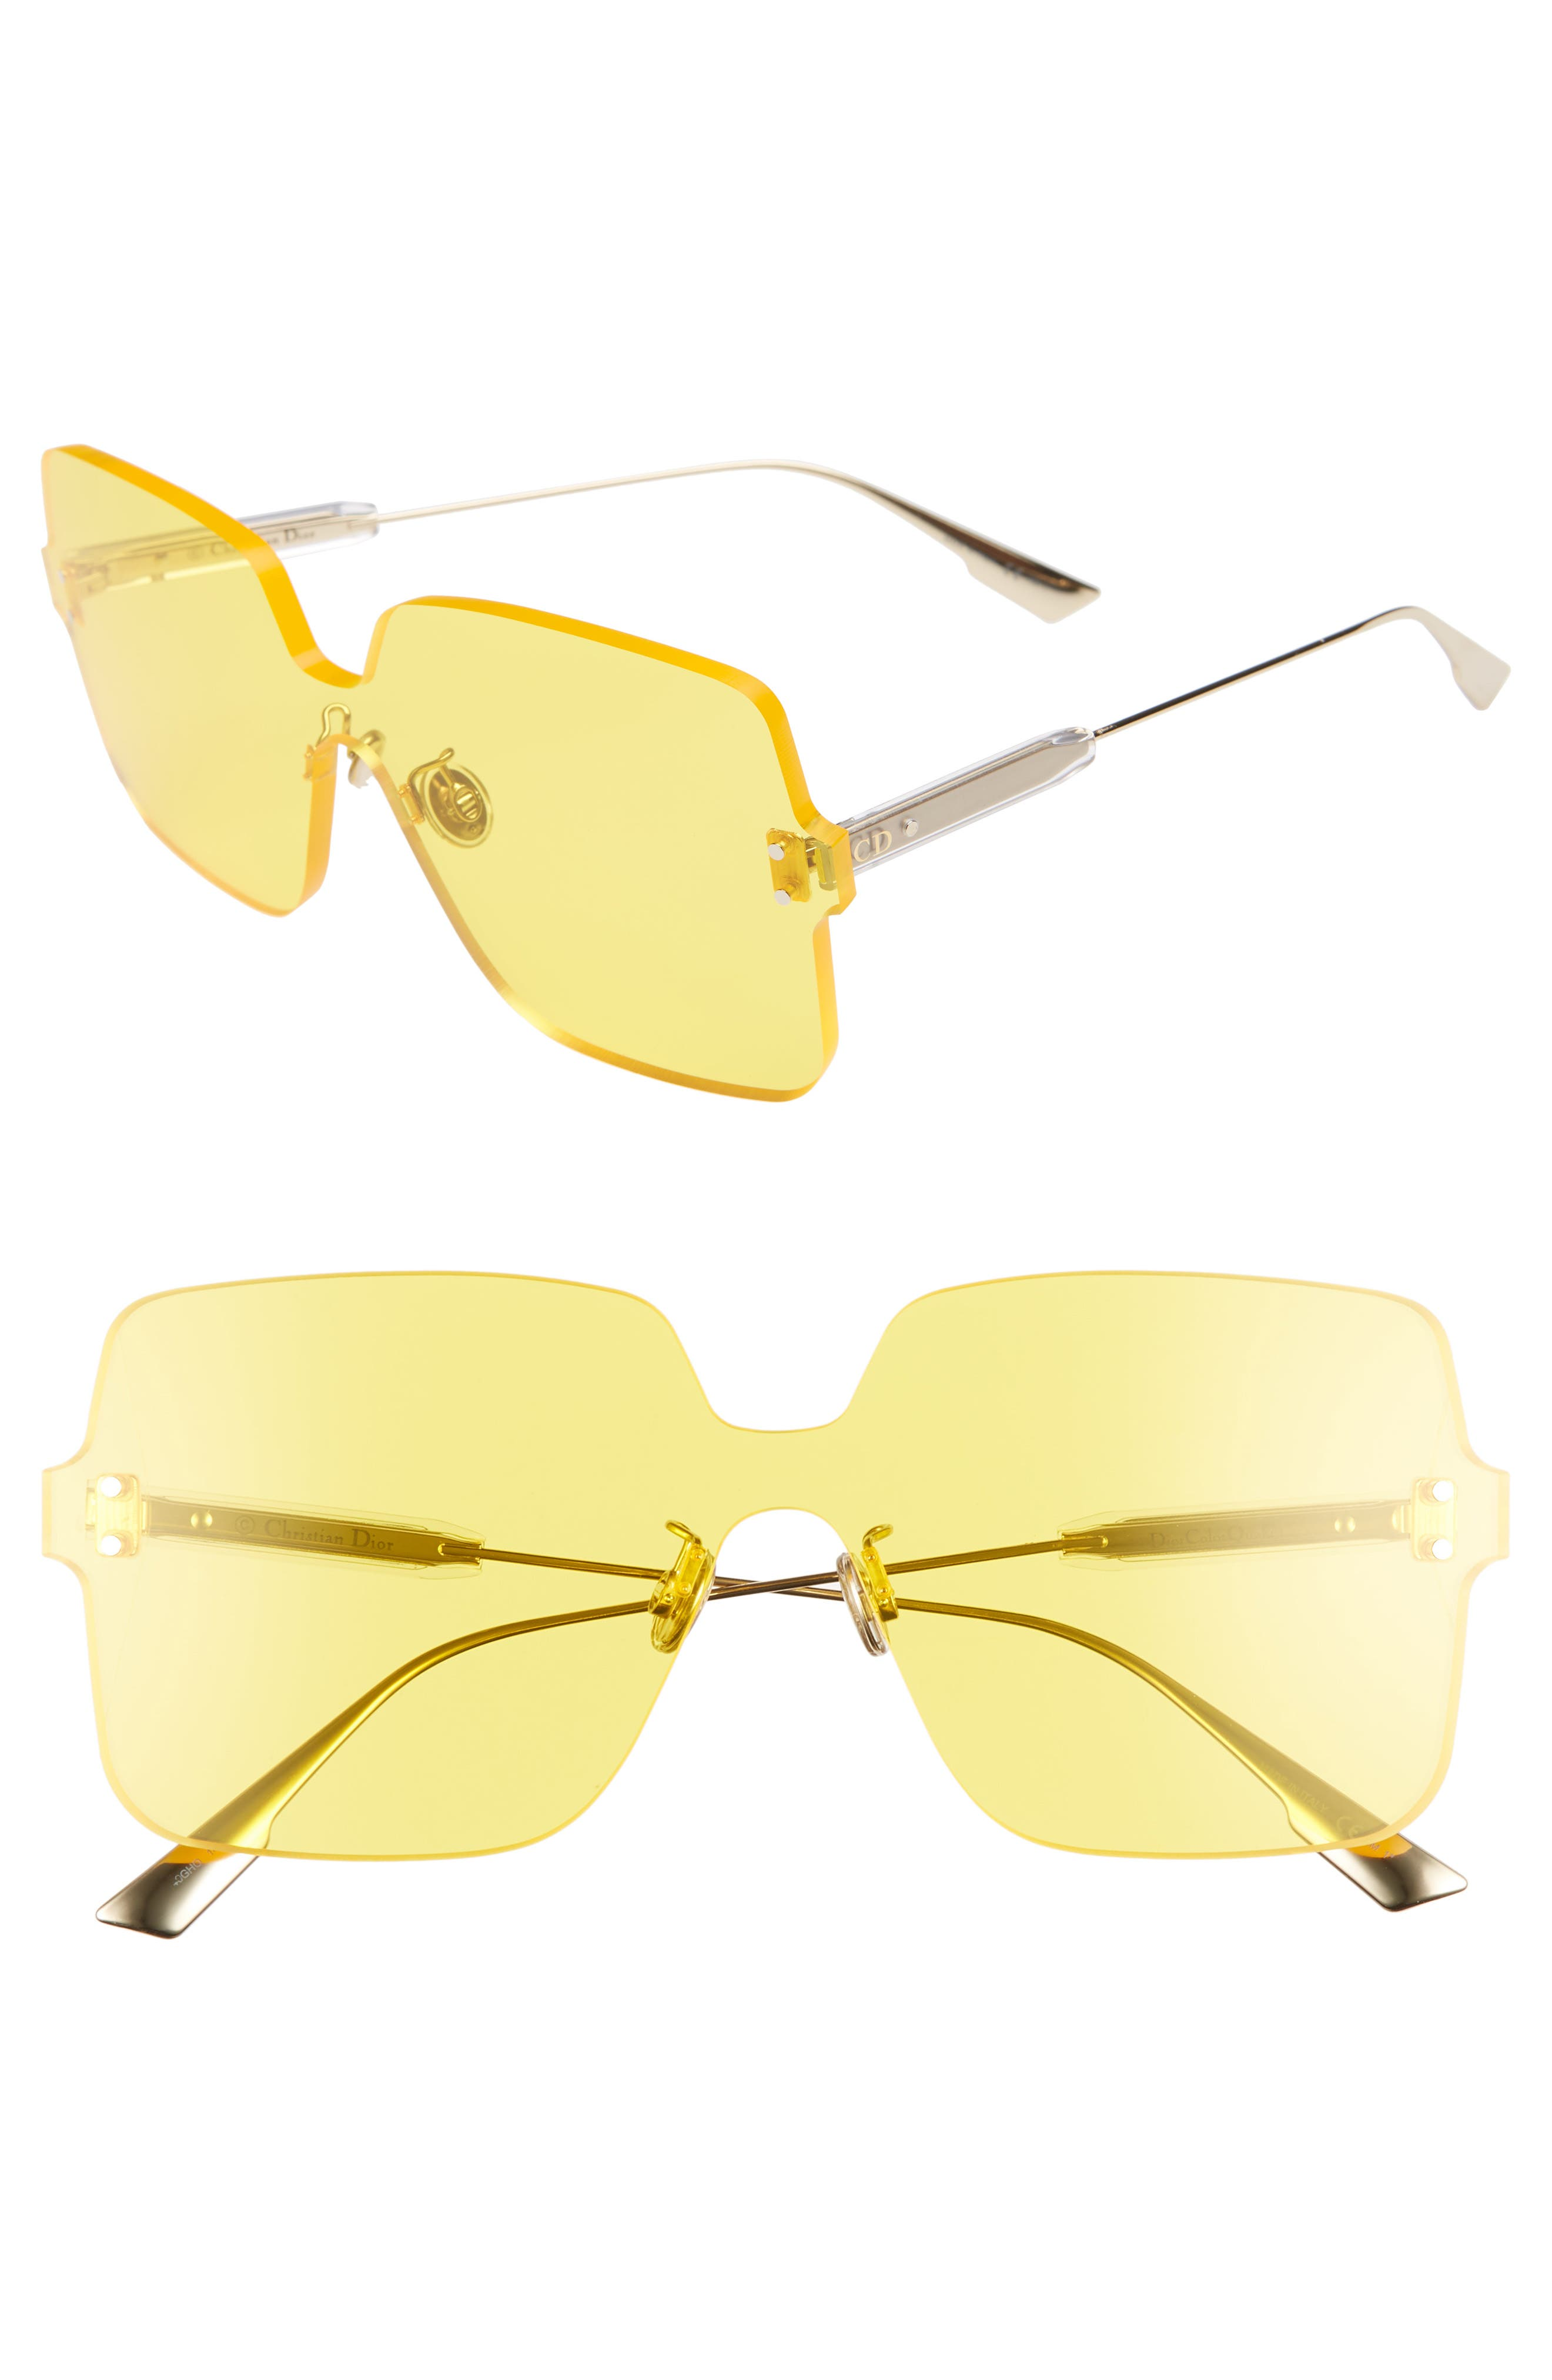 Christian Dior Quake1 147Mm Square Rimless Shield Sunglasses - Yellow